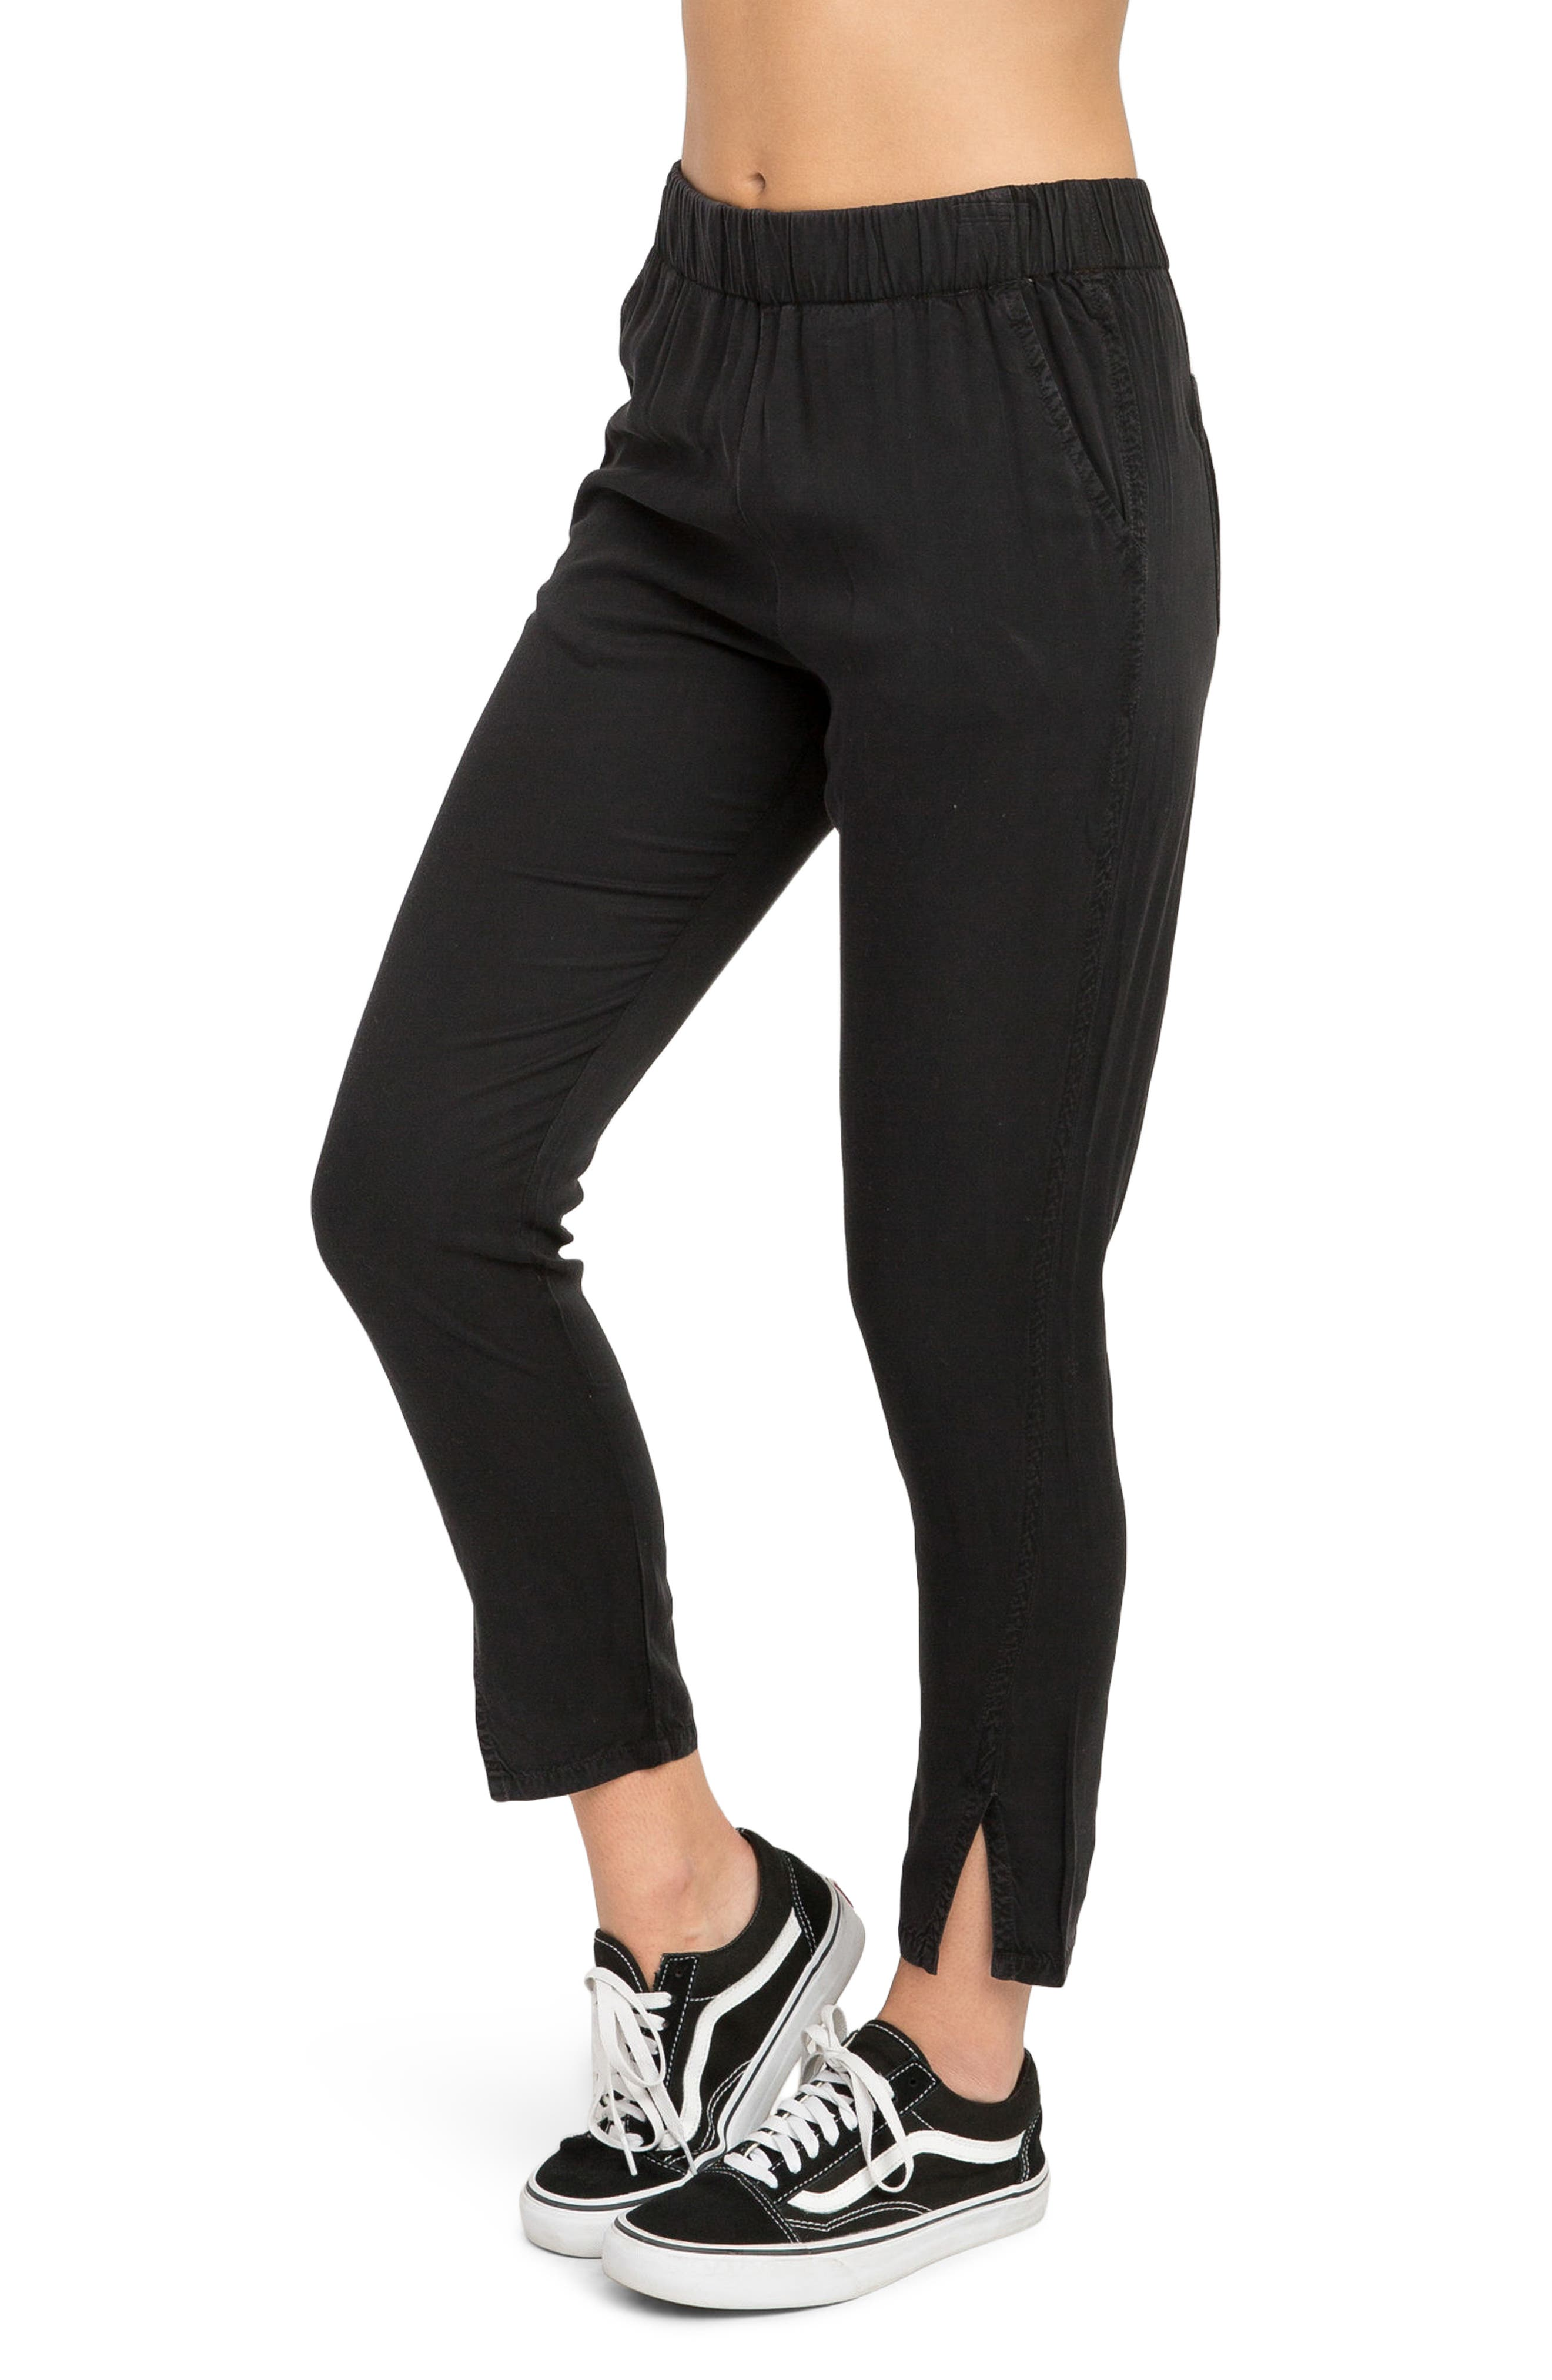 Chill Vibes Ankle Pants,                             Alternate thumbnail 3, color,                             001